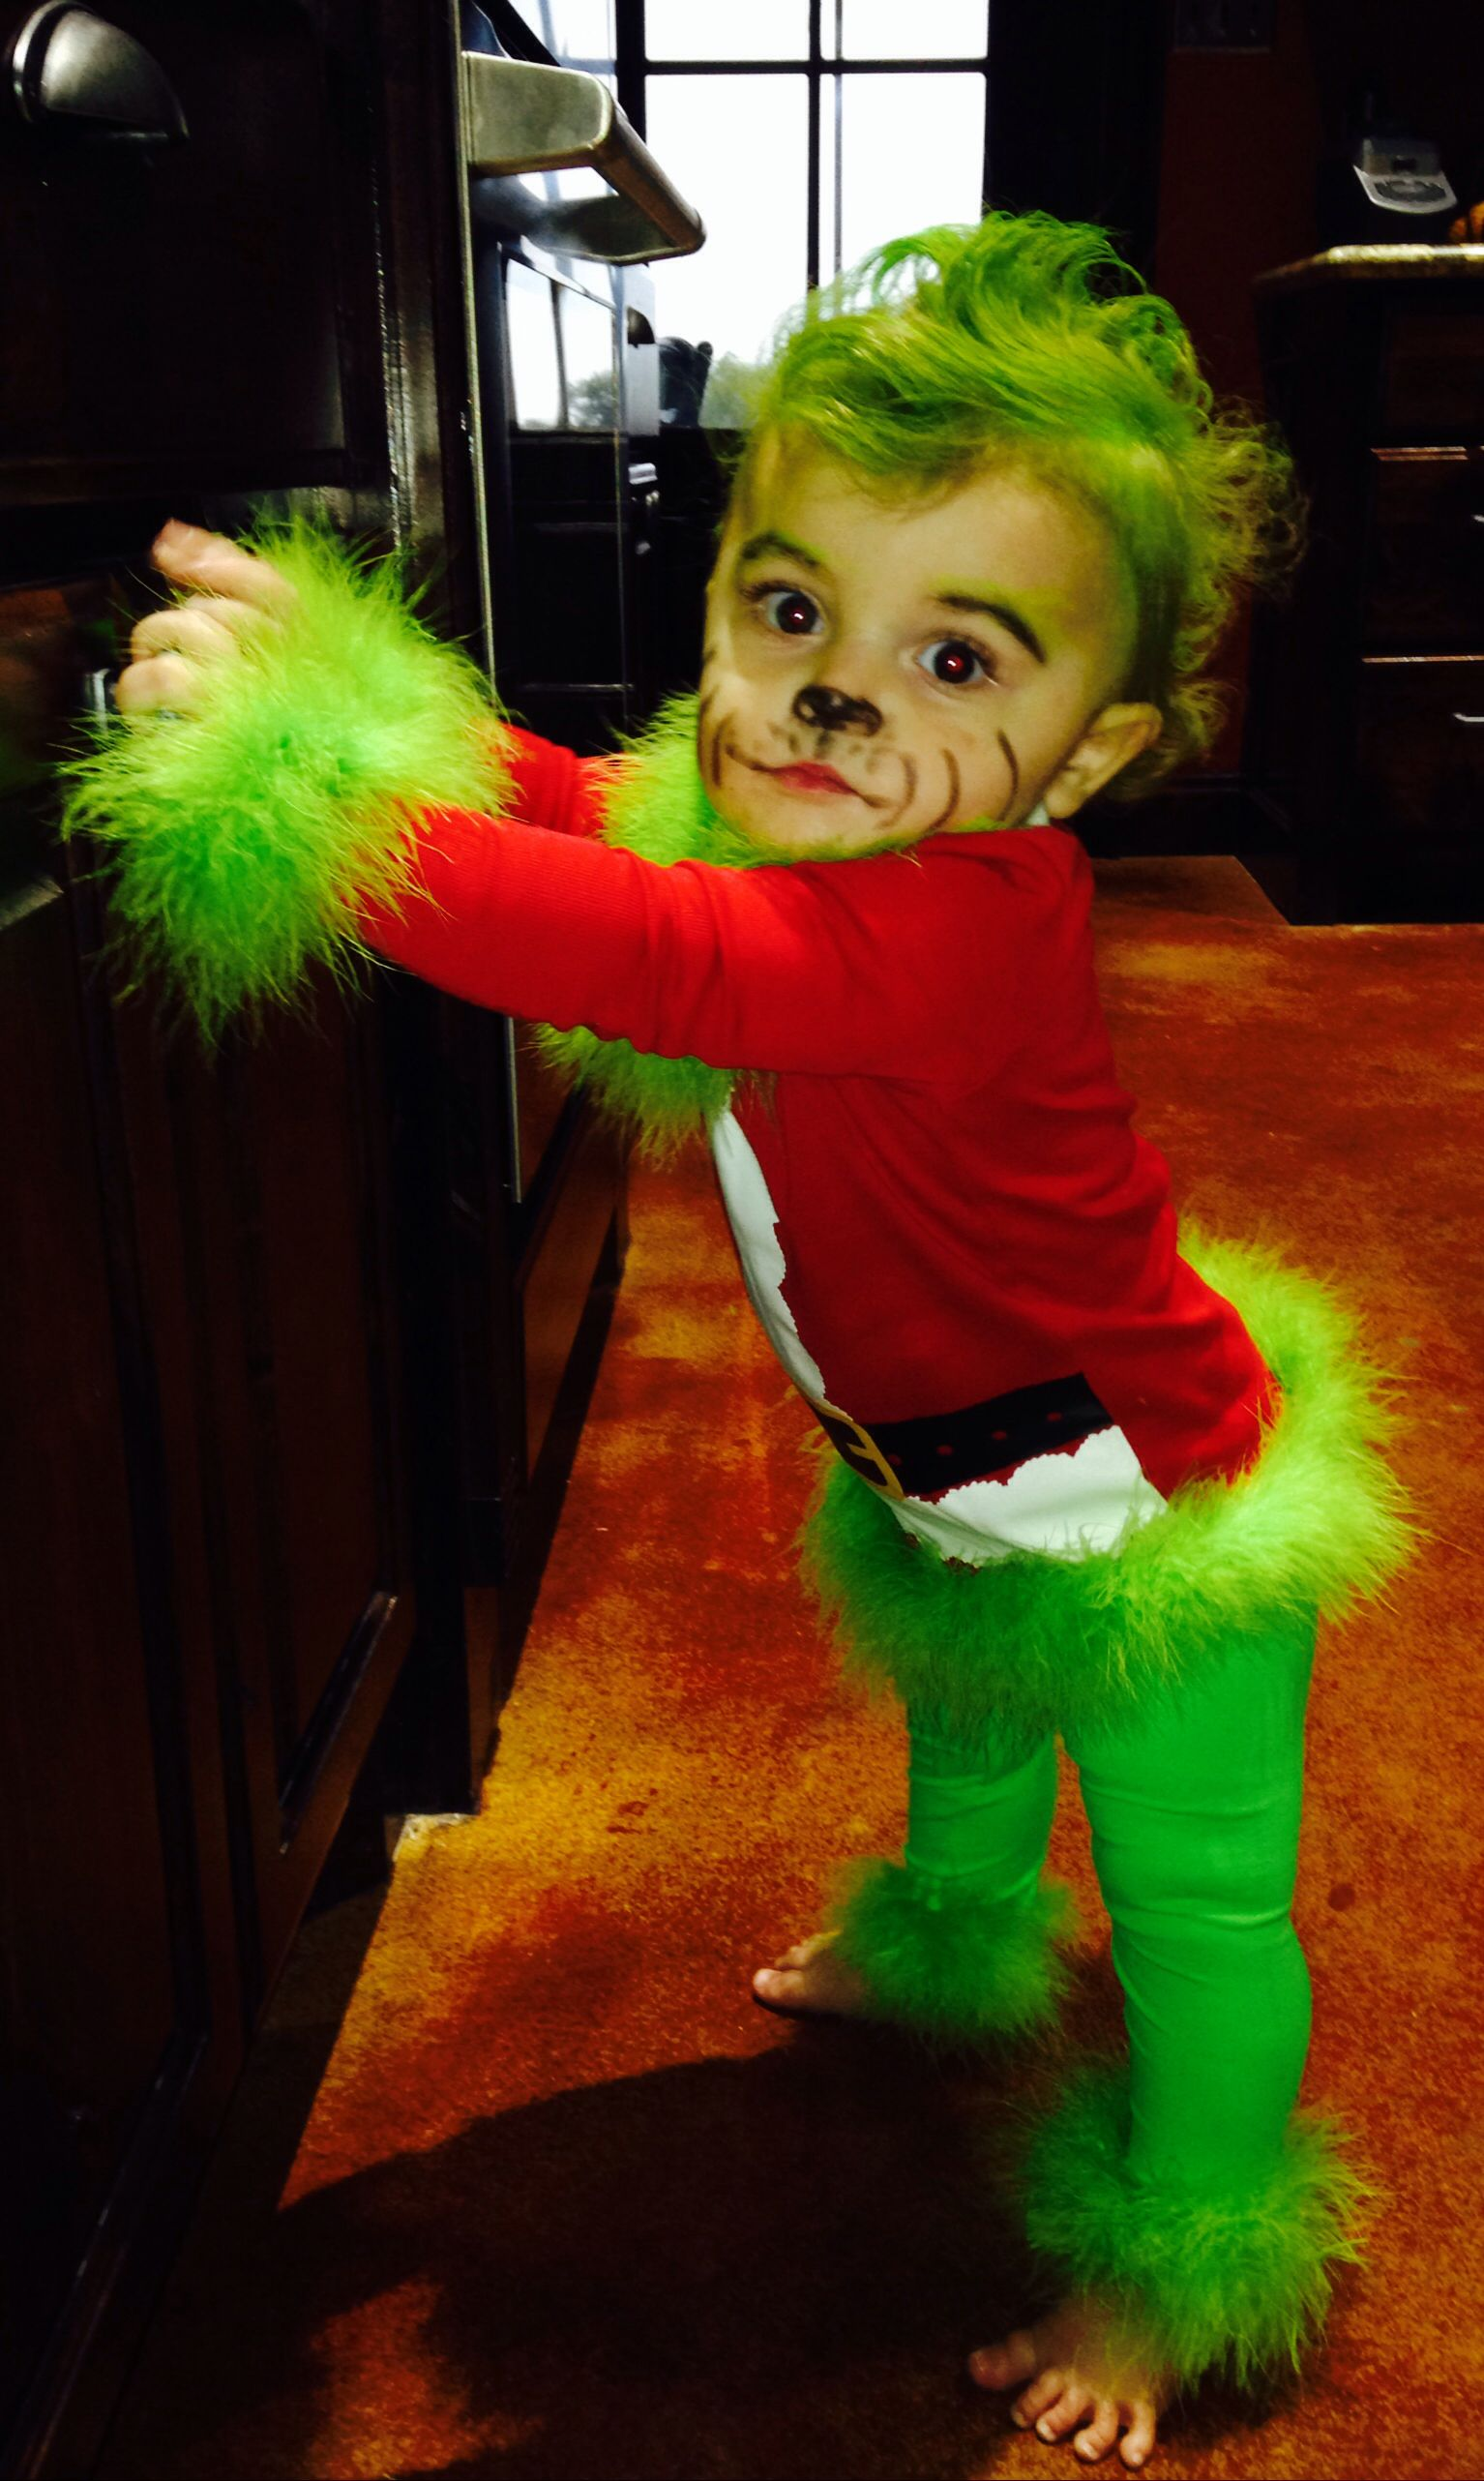 My Sweet Baby Grinch costume for my little girl minus the